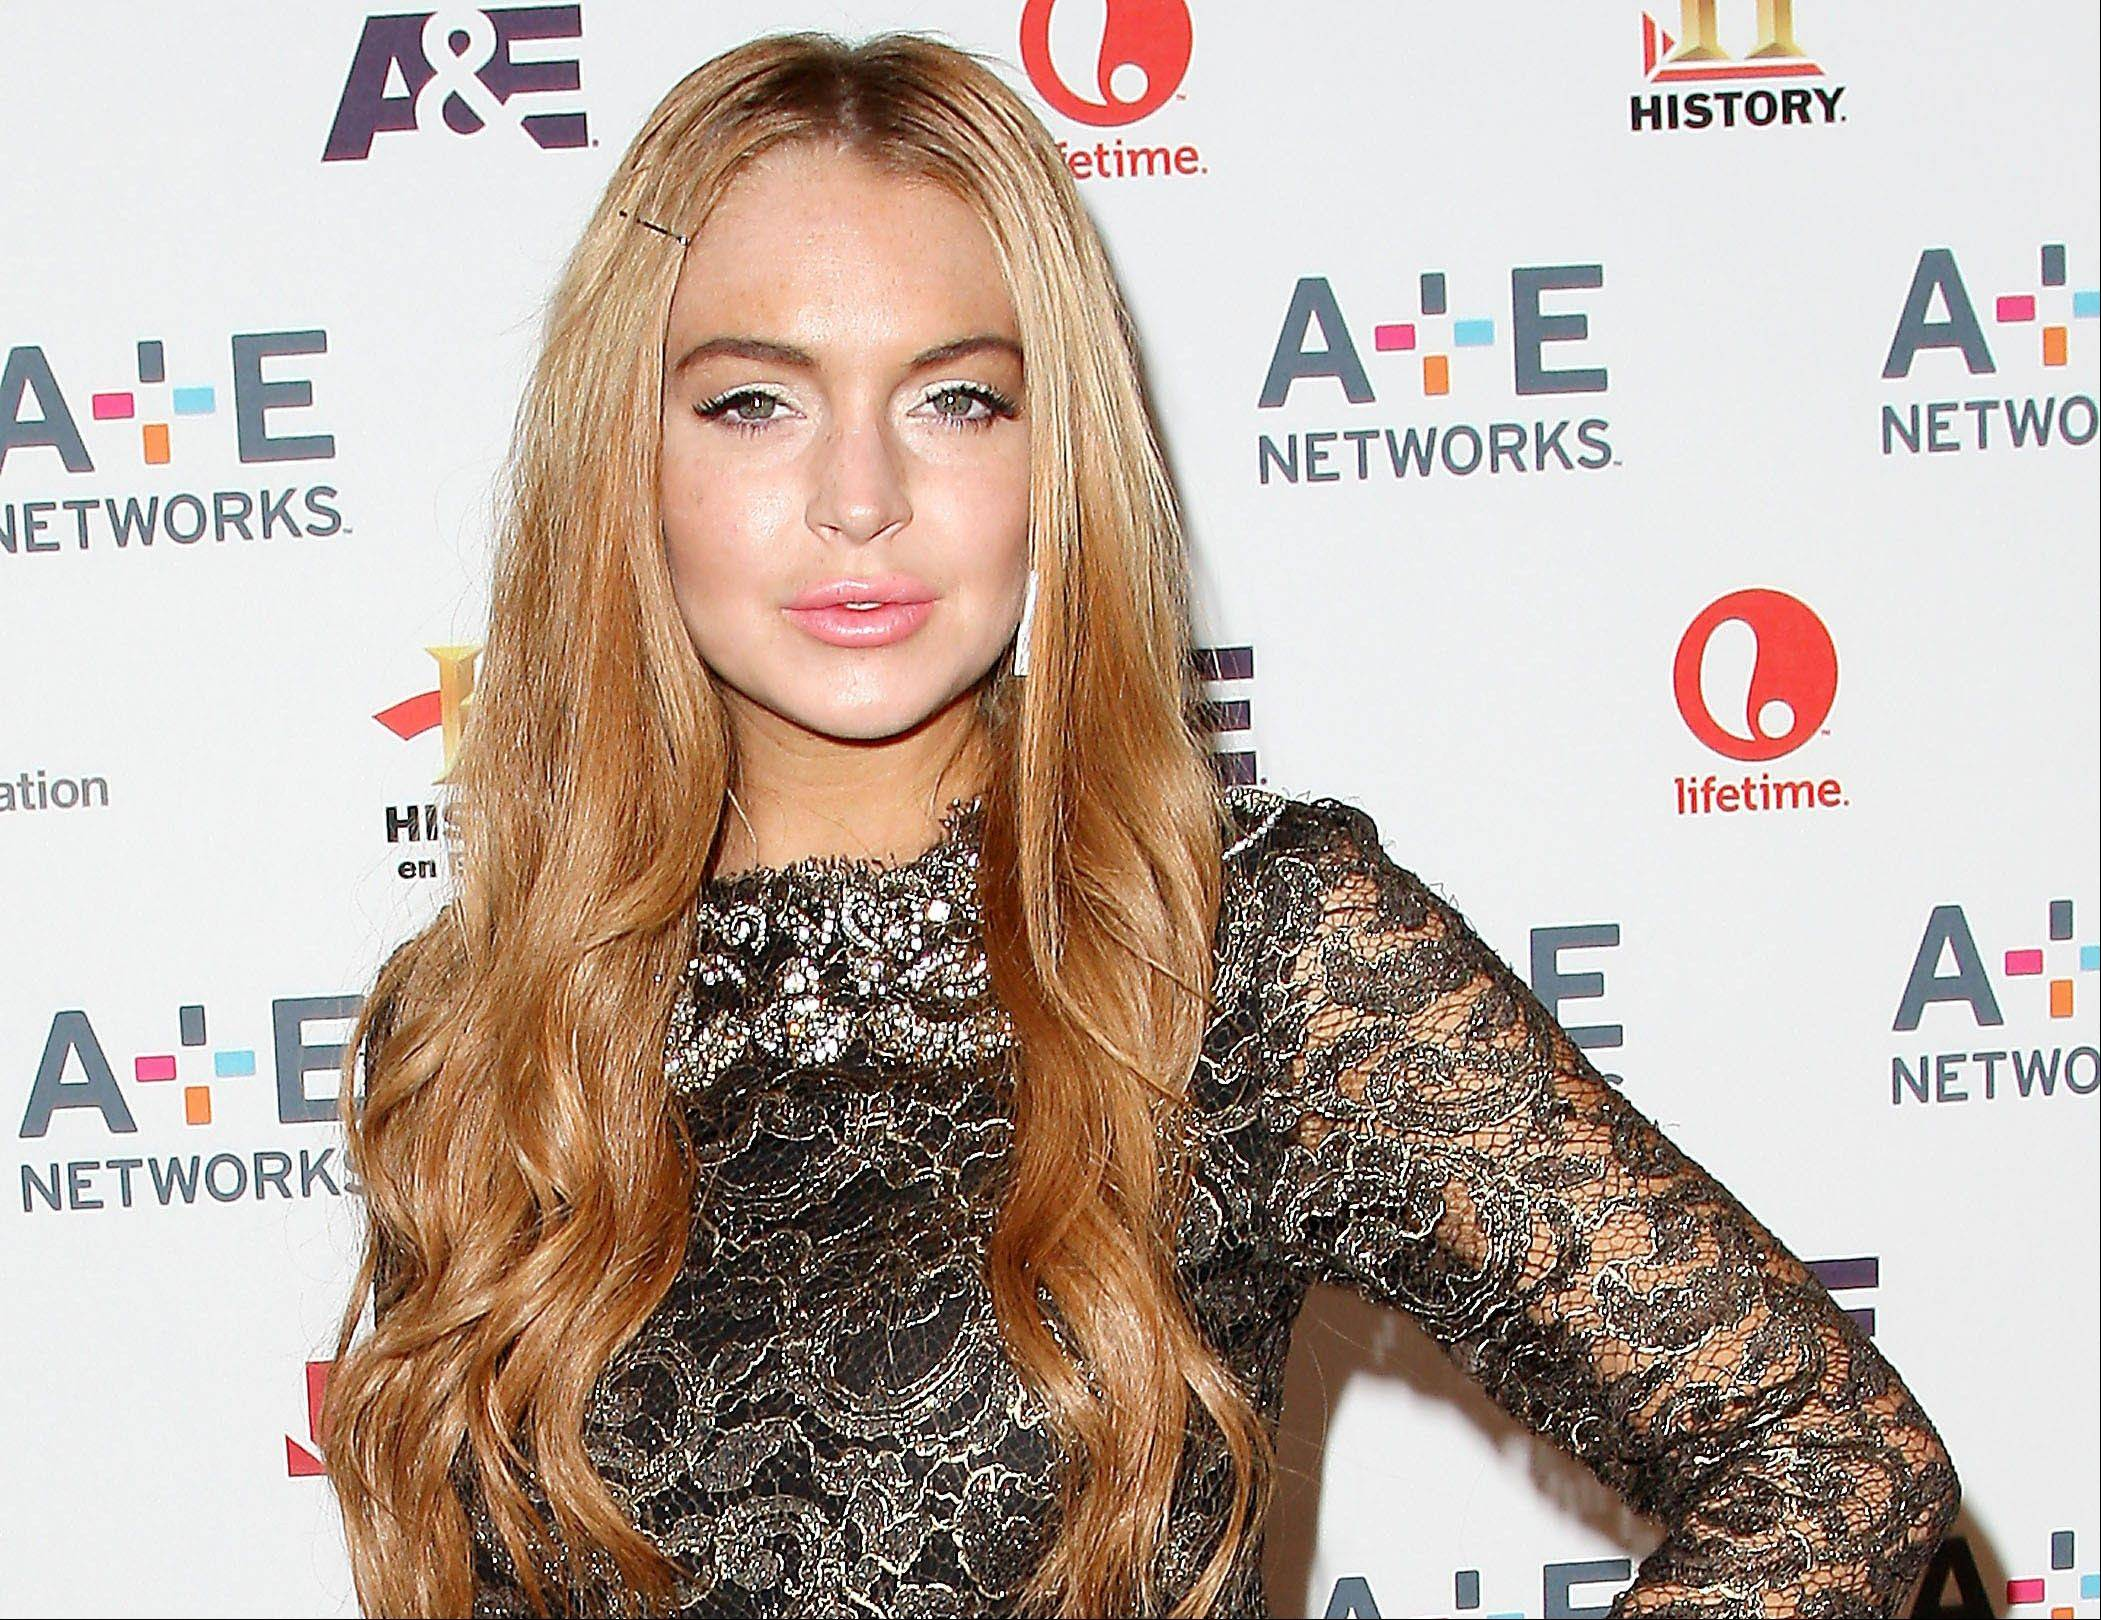 Prosecutors on Tuesday rejected a potential burglary case that police presented against actress Lindsay Lohan, who was at a home earlier this month where a burglary was reported.